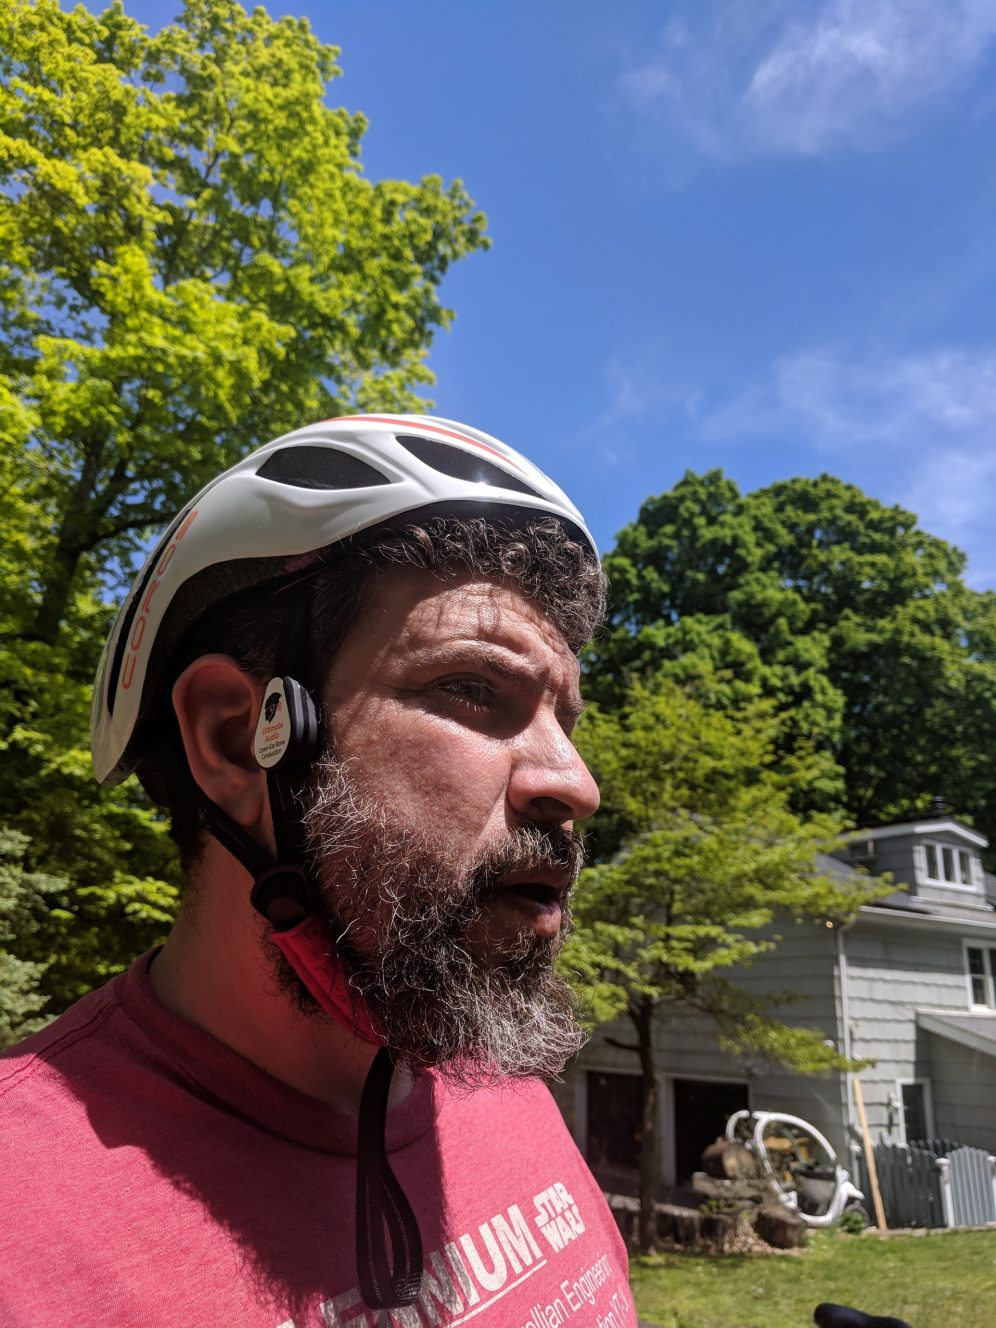 Coros-bluetooth-bike helmet-review